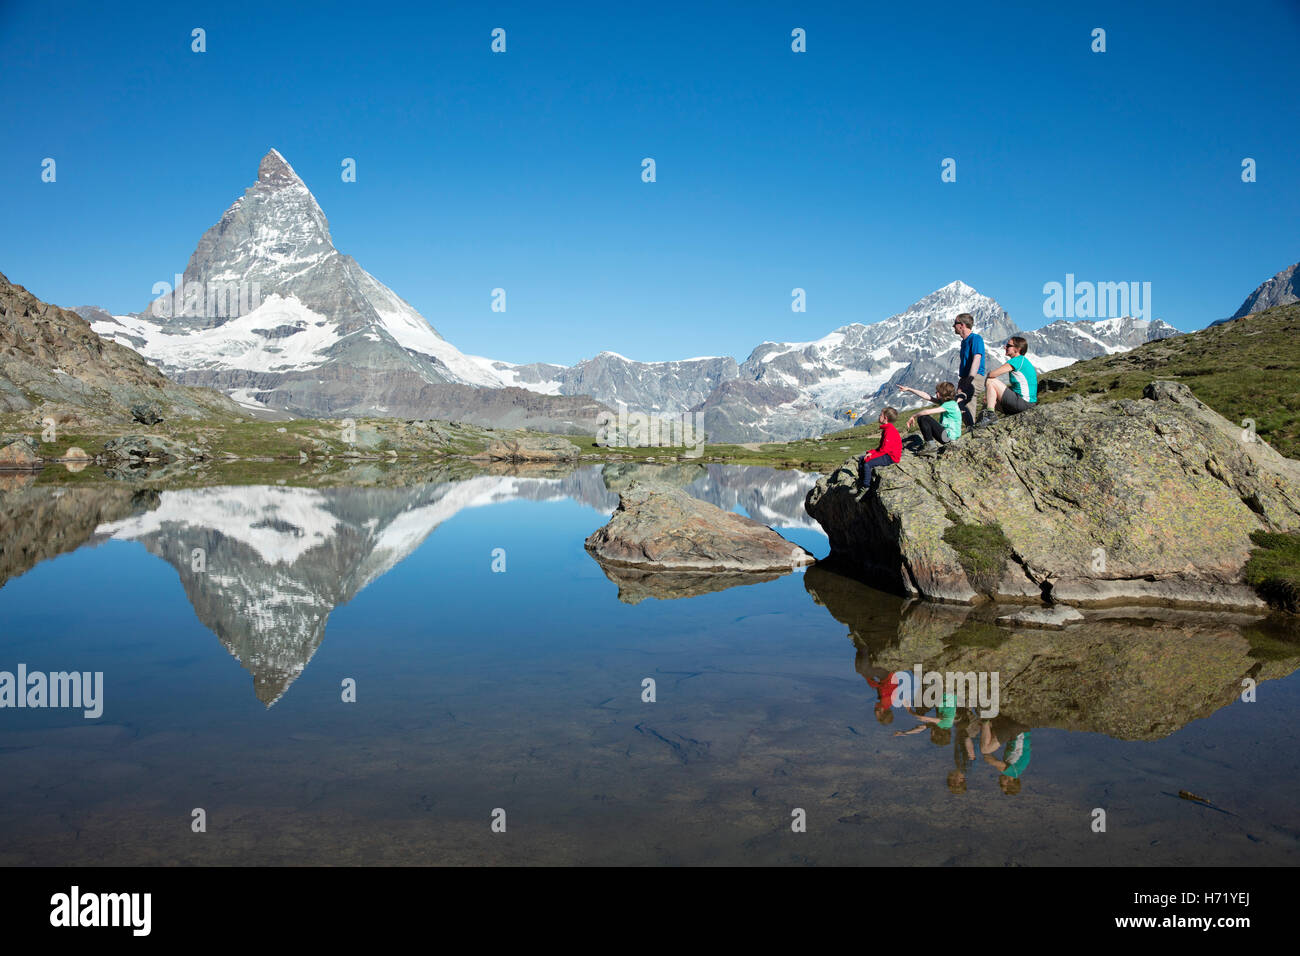 Hiking family and Matterhorn reflected in the Riffelsee. Zermatt, Pennine Alps, Valais, Switzerland. - Stock Image